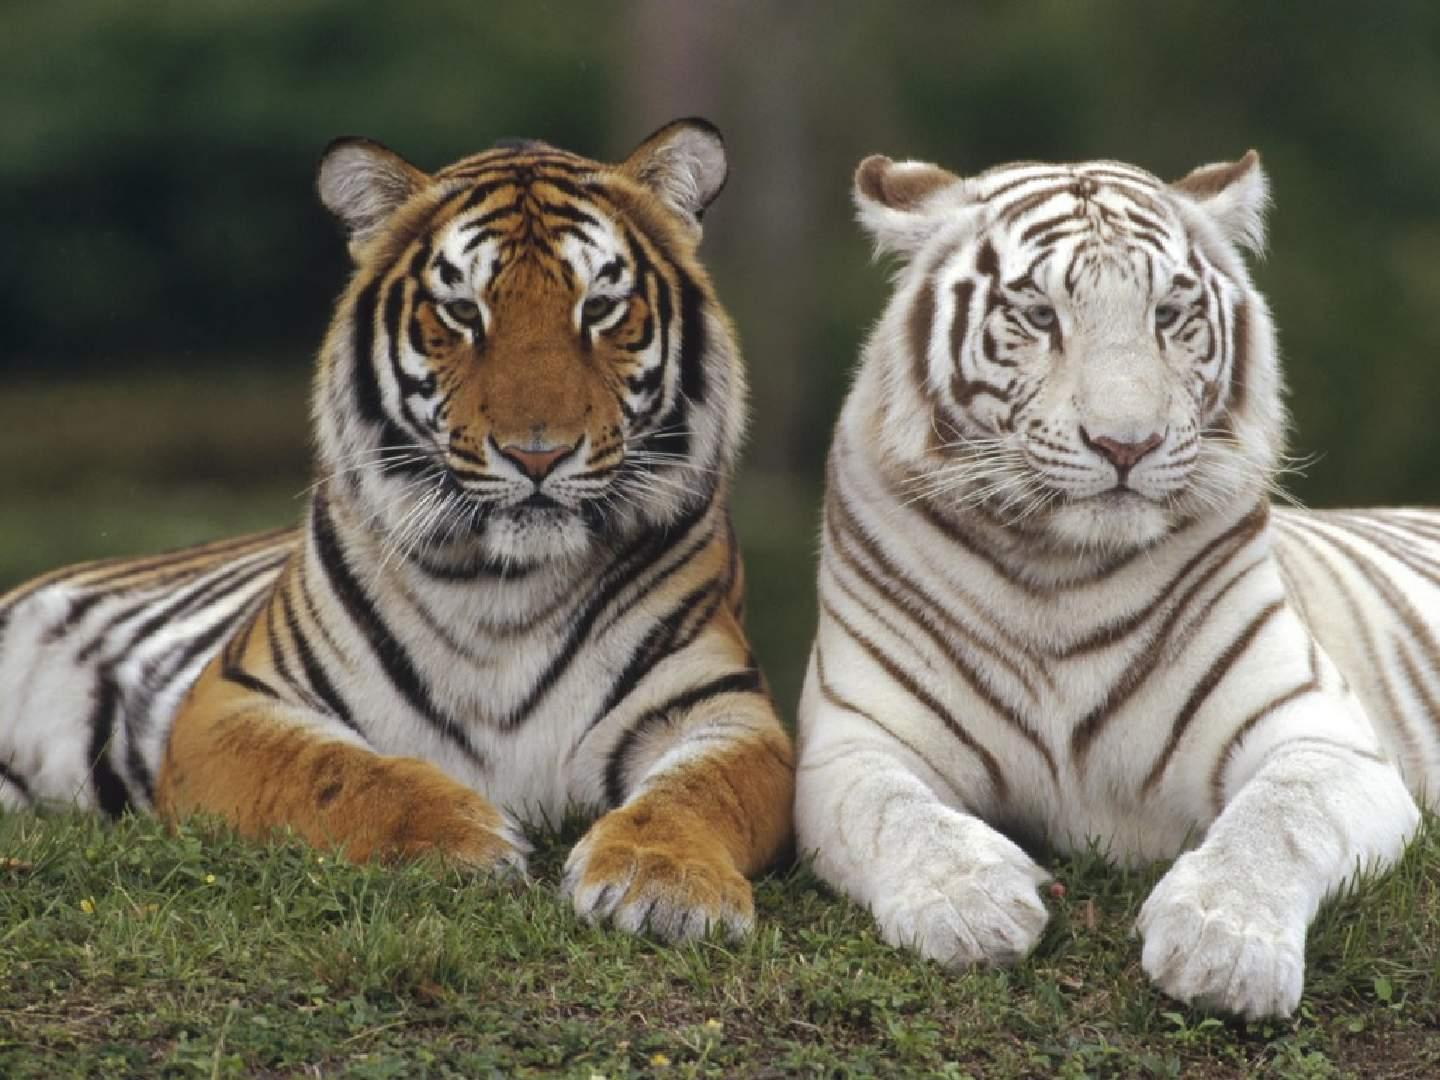 White Tiger clipart bengal tiger Wallpapers White tiger colored Bengal